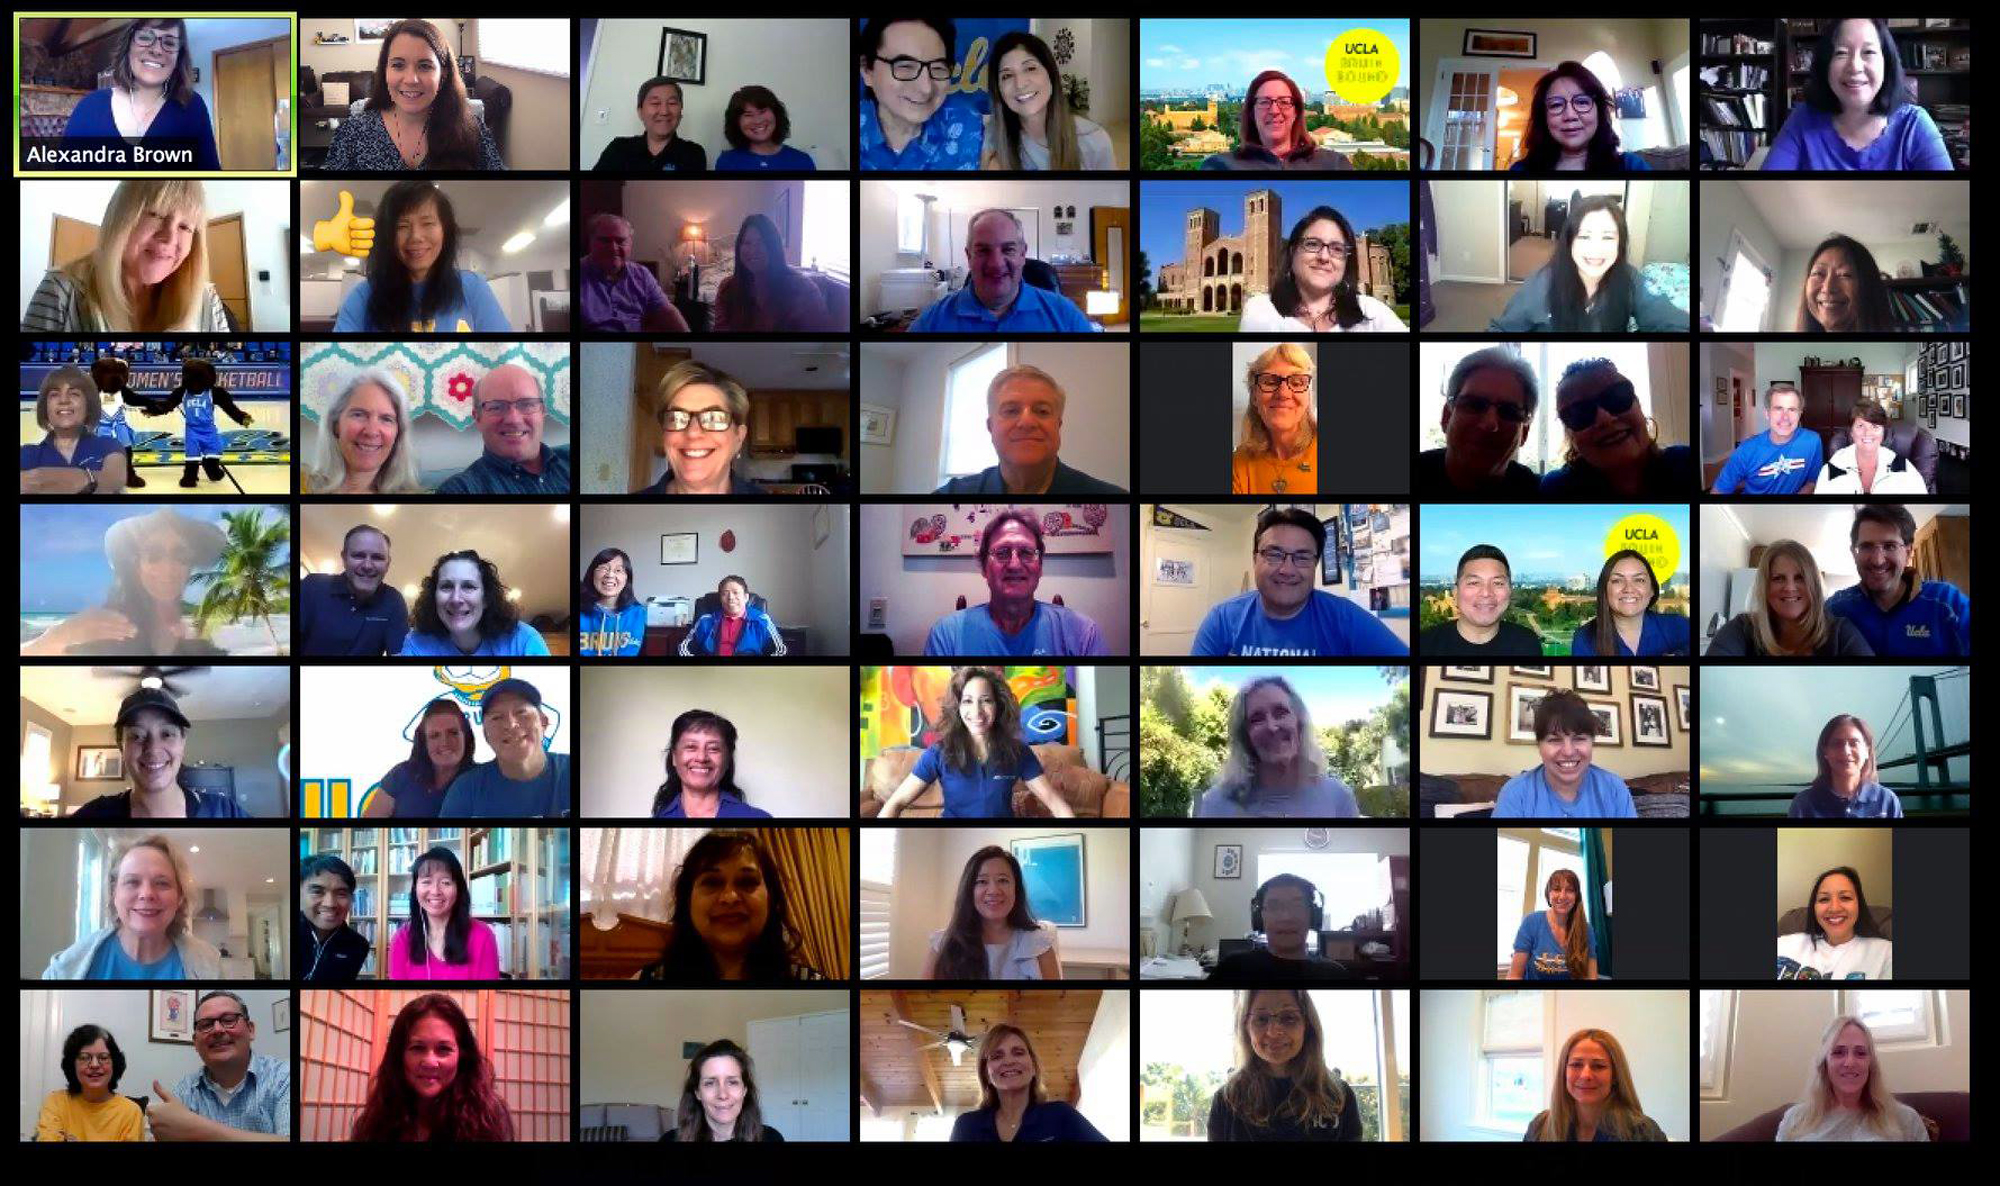 UCLA Alumni parents' council in an online meeting